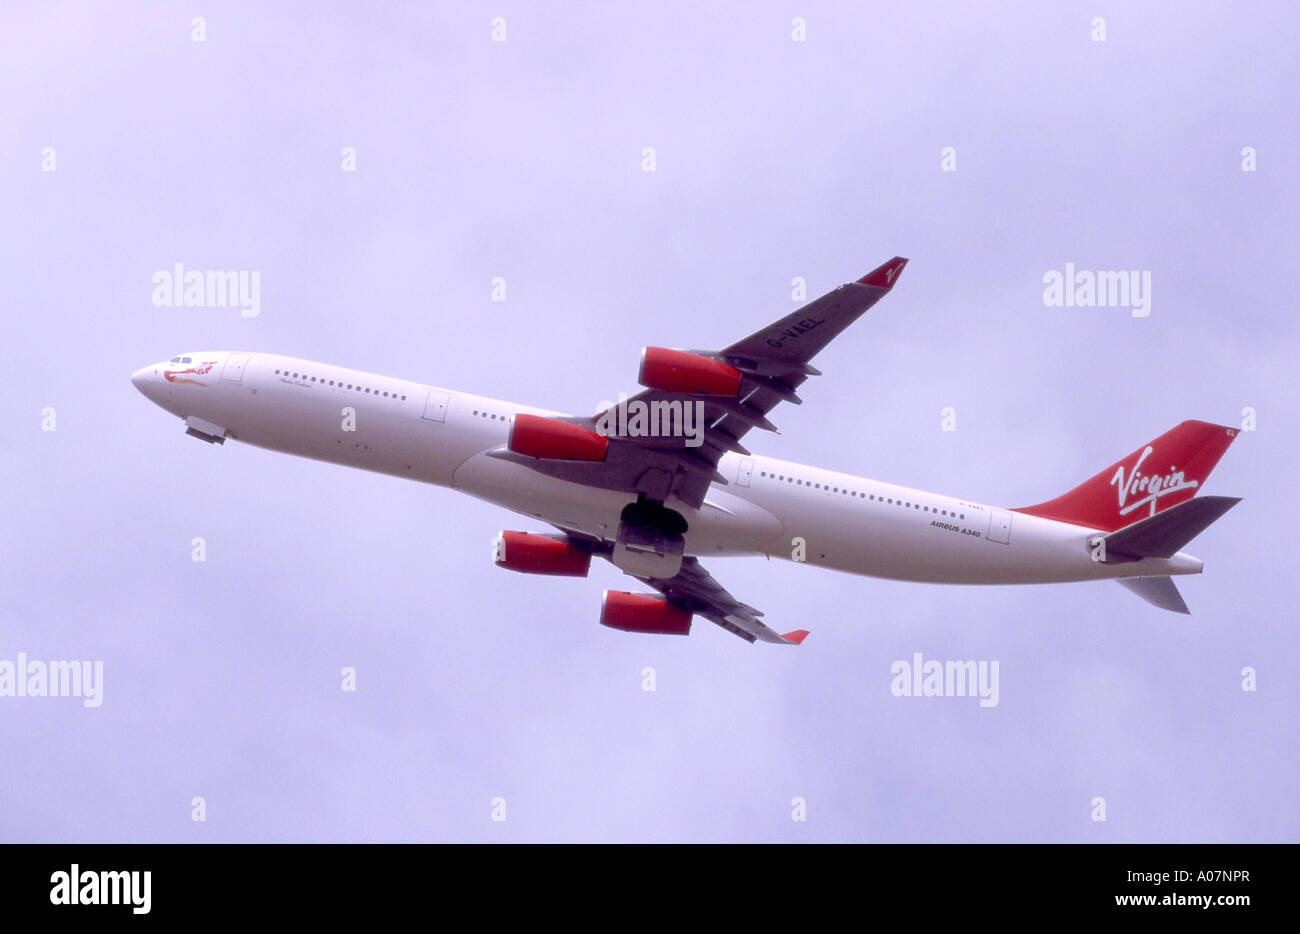 Virgin Atlantic Airways 340-313 Airbus carrying out a low pass.    GAV 4012-382. Stock Photo